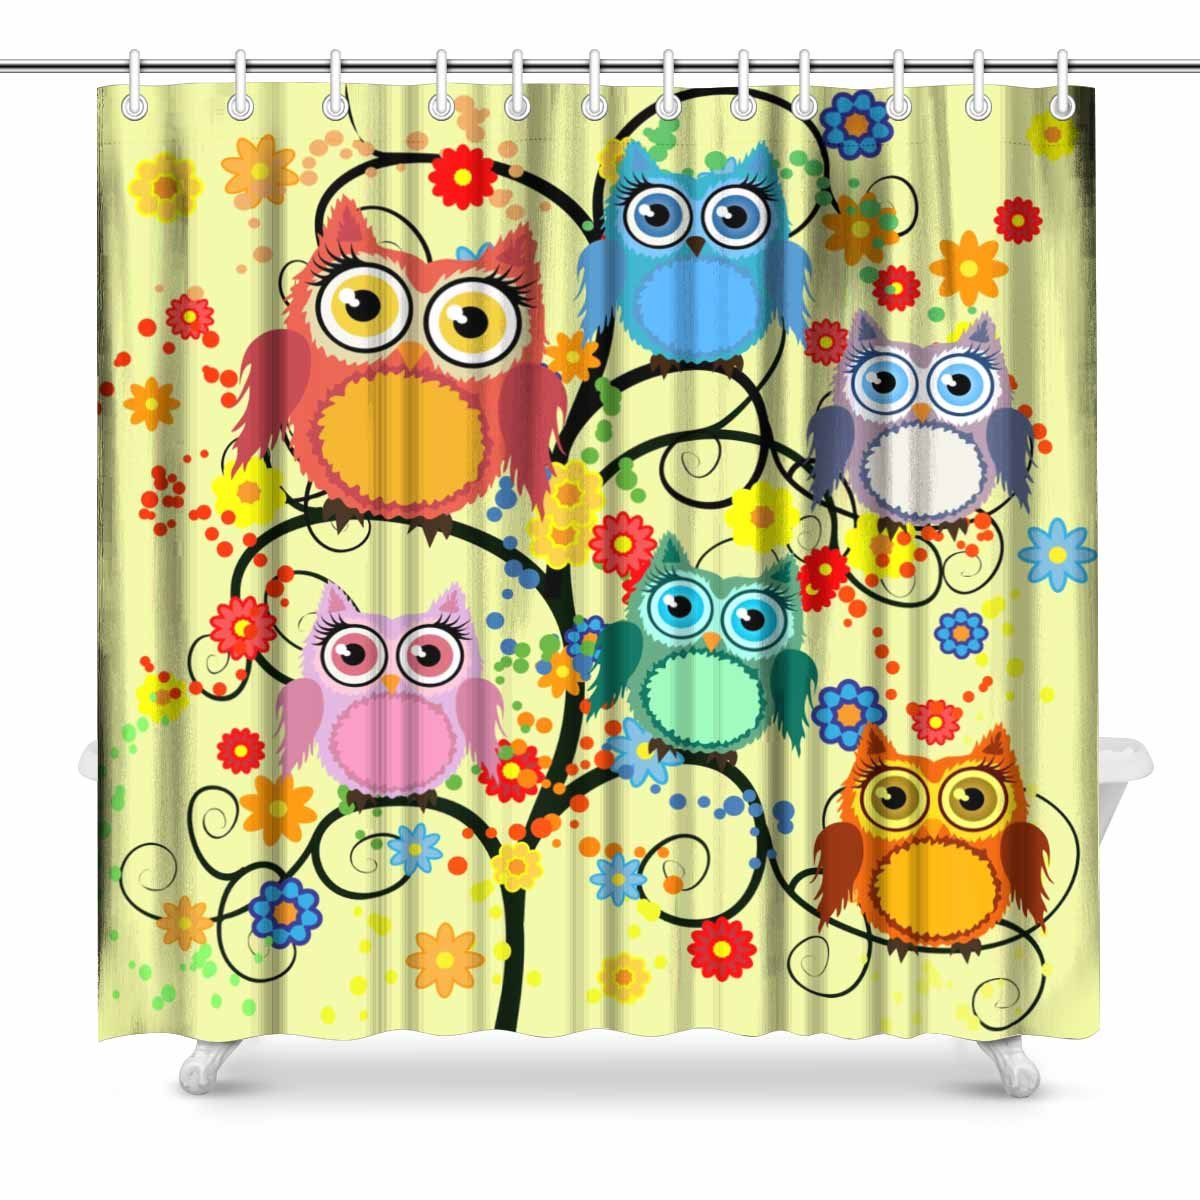 Mkhert Owls Shower Curtain Home Decor Bathroom Shower Curtain 66x72 Inch